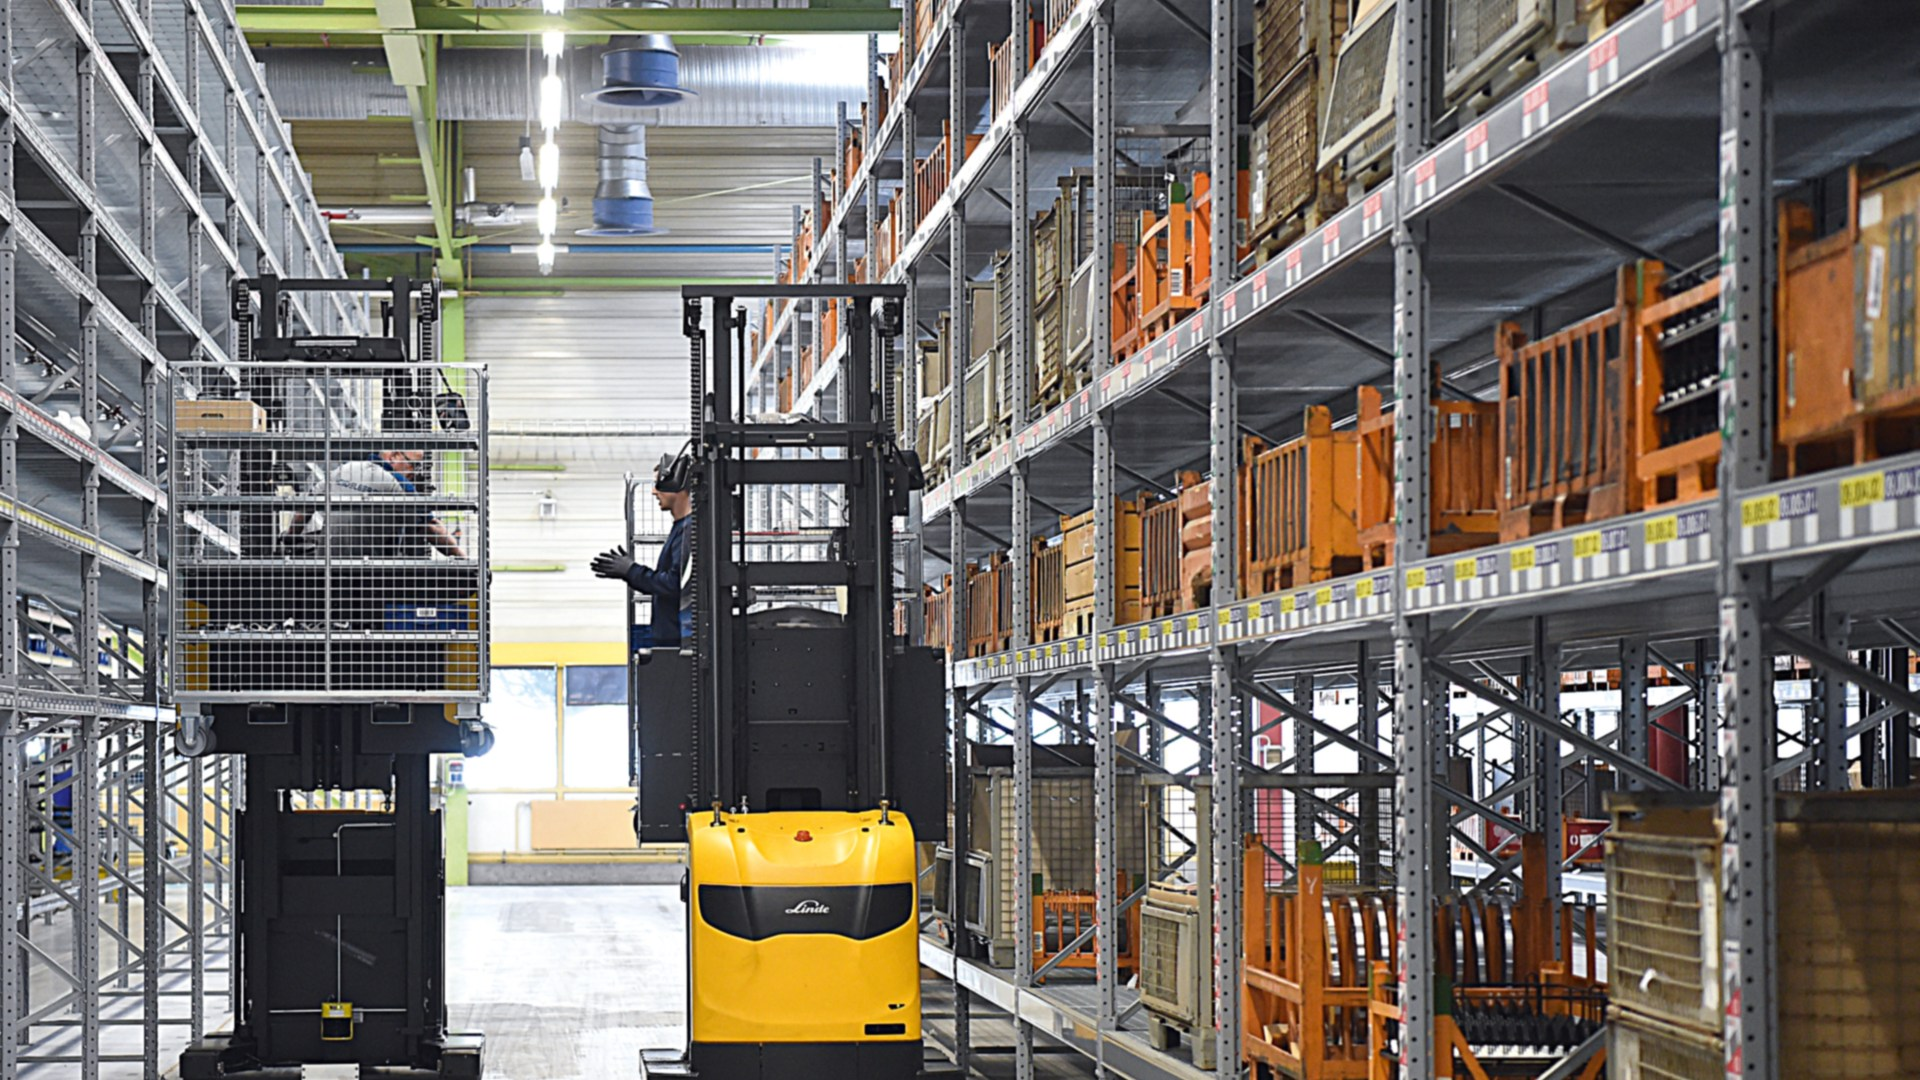 Linde reach trucks and order pickers at Heidelberger Druckmaschinen